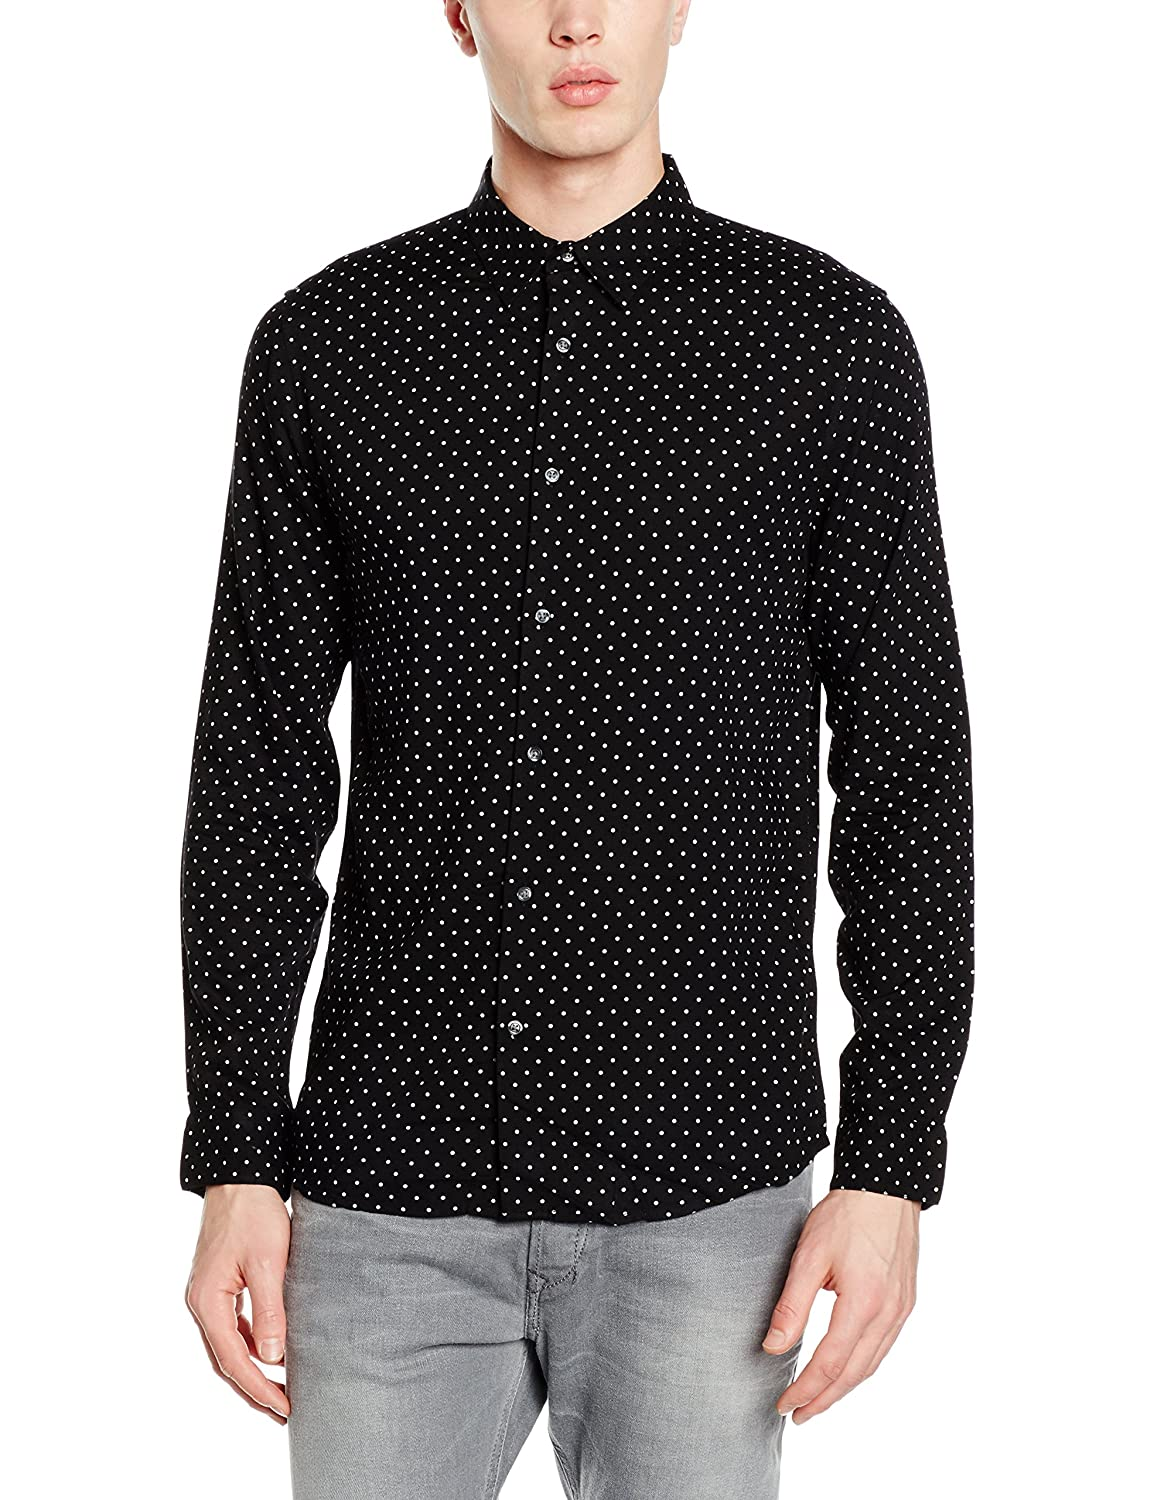 New Look Viscose Polka Dot Camisa para Hombre